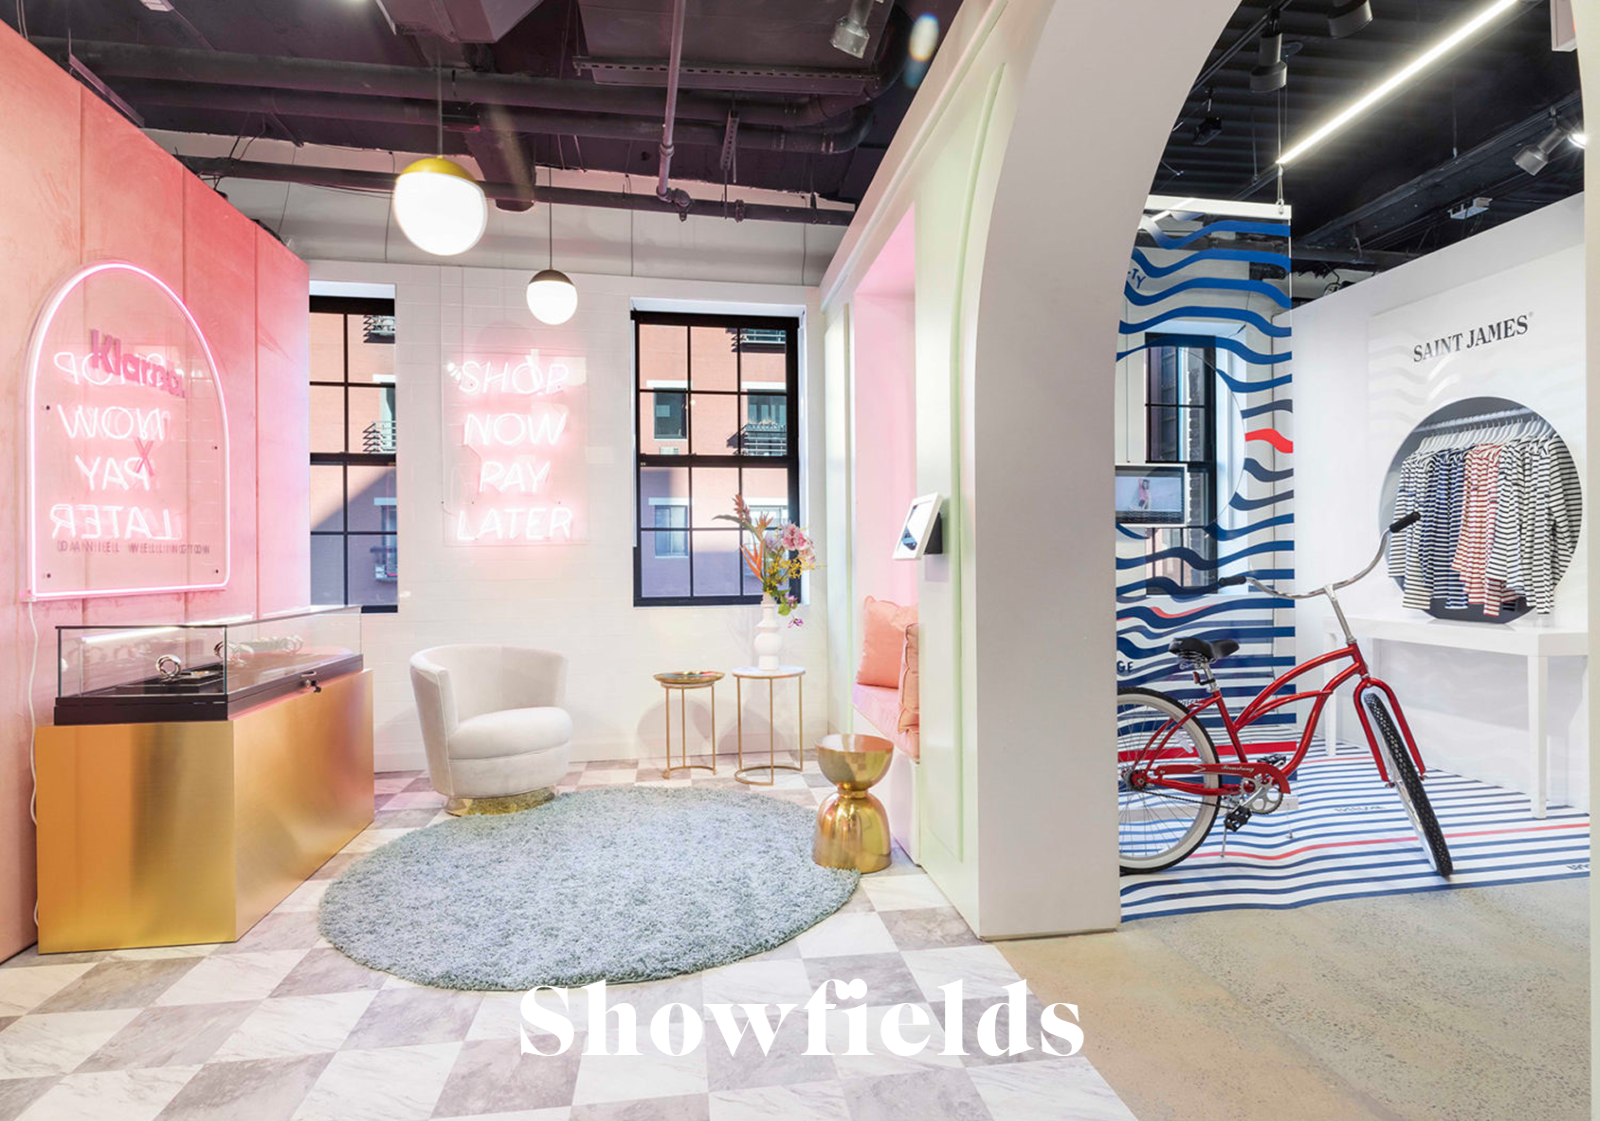 Showfields Pop-up Store New York